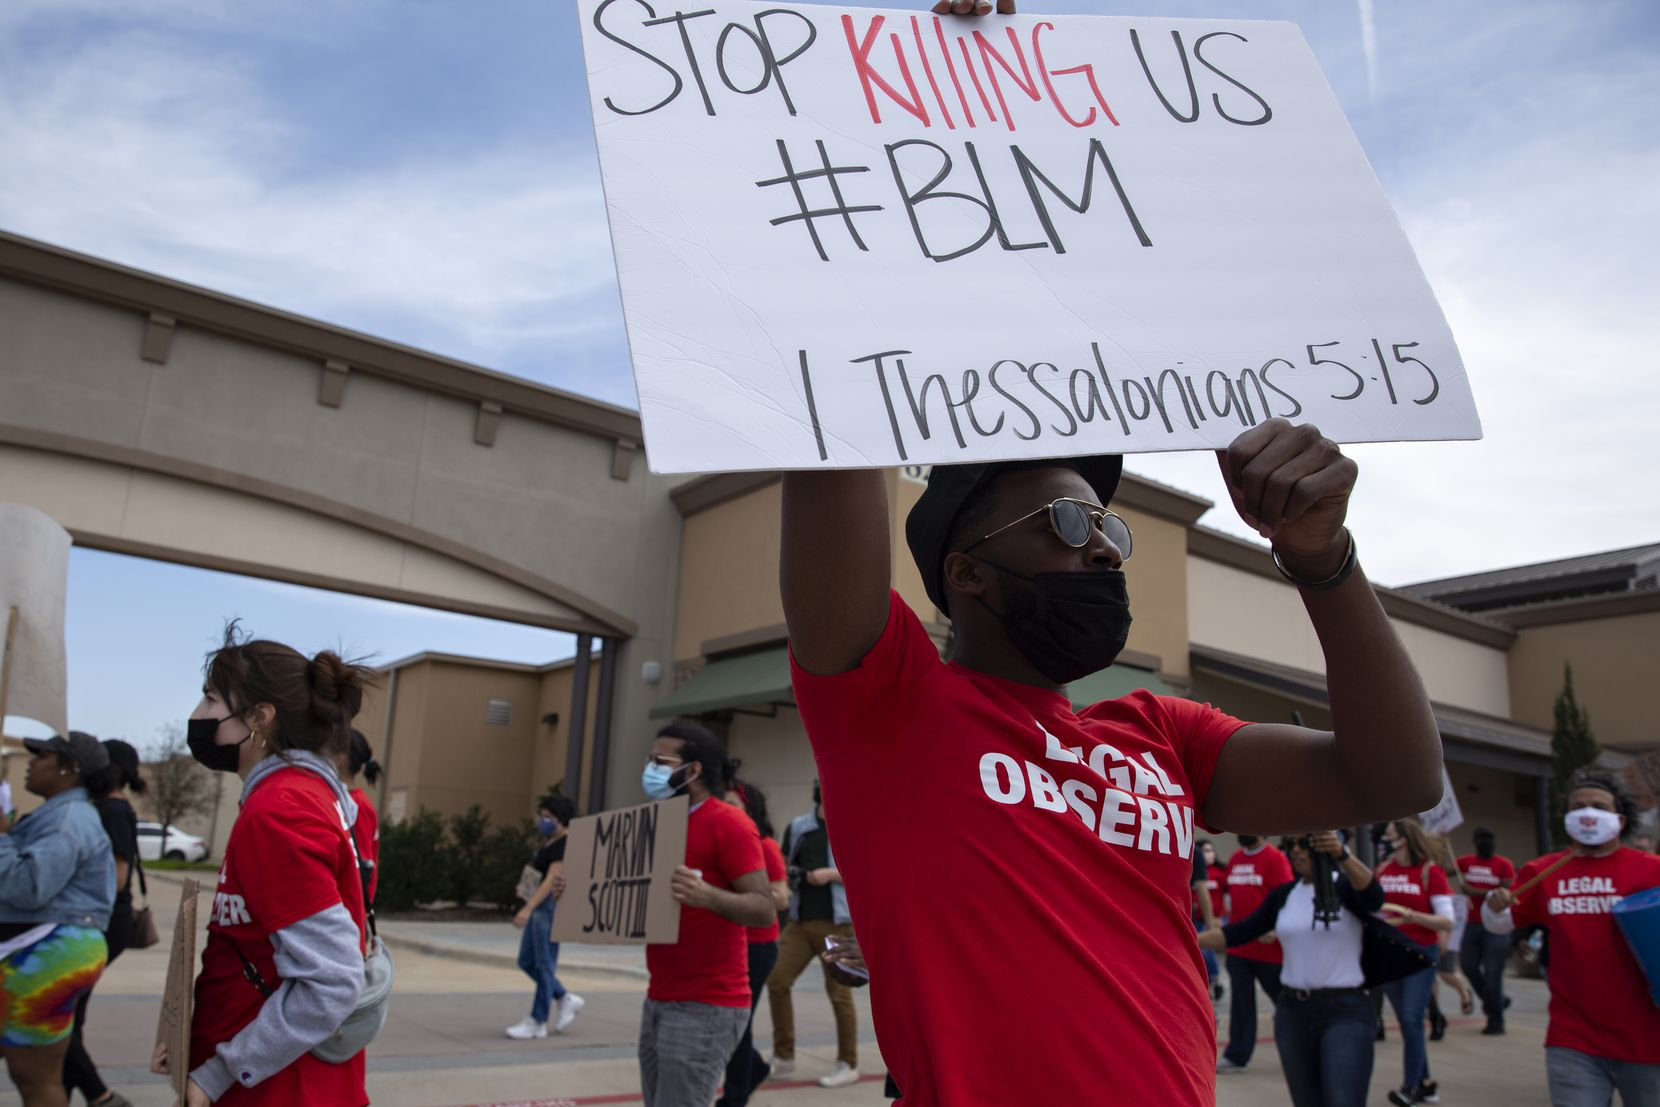 Zion Mayberry holds a sign as he participates in a march through the Allen Outlets on Sunday, March 21, 2021 demanding justice for Marvin Scott III, who died a week prior while in custody at the Collin County Jail on March 14, 2021. Marvin Scott III was arrested at the Allen Outlets for possession of less than two ounces of marijuana. (Shelby Tauber/Special Contributor)